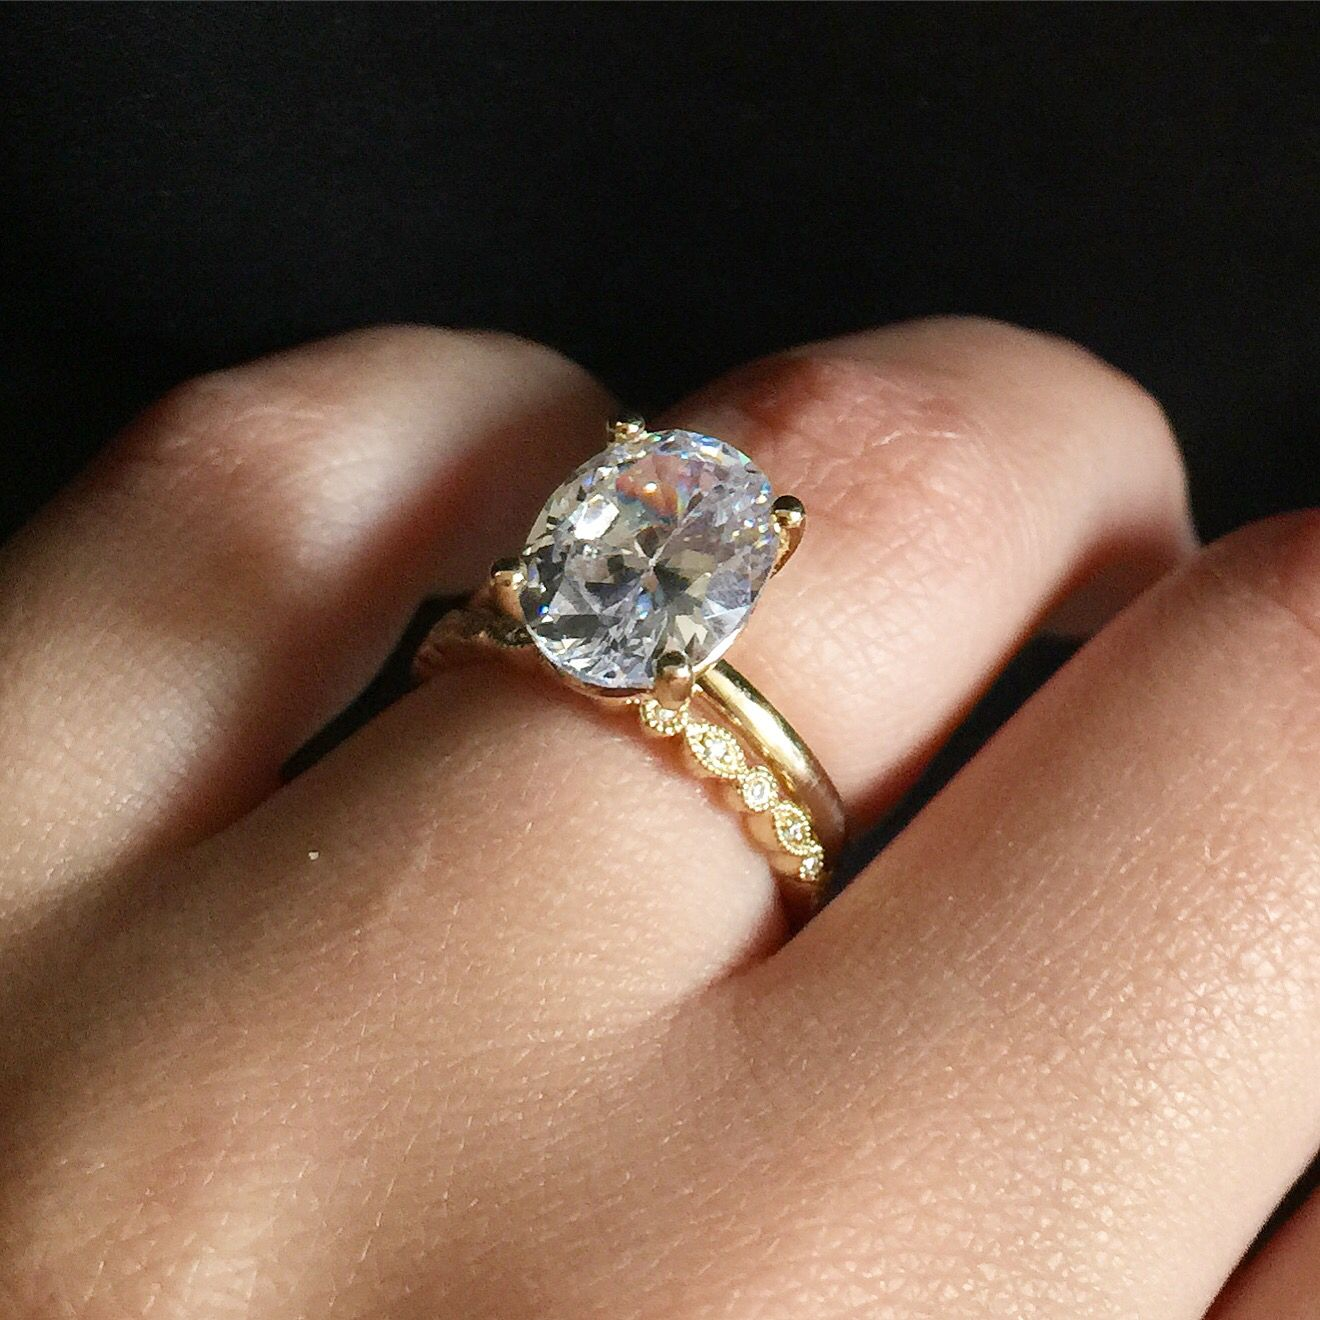 3 Carat Oval Diamond Engagement Ring Solitaire With Vintage